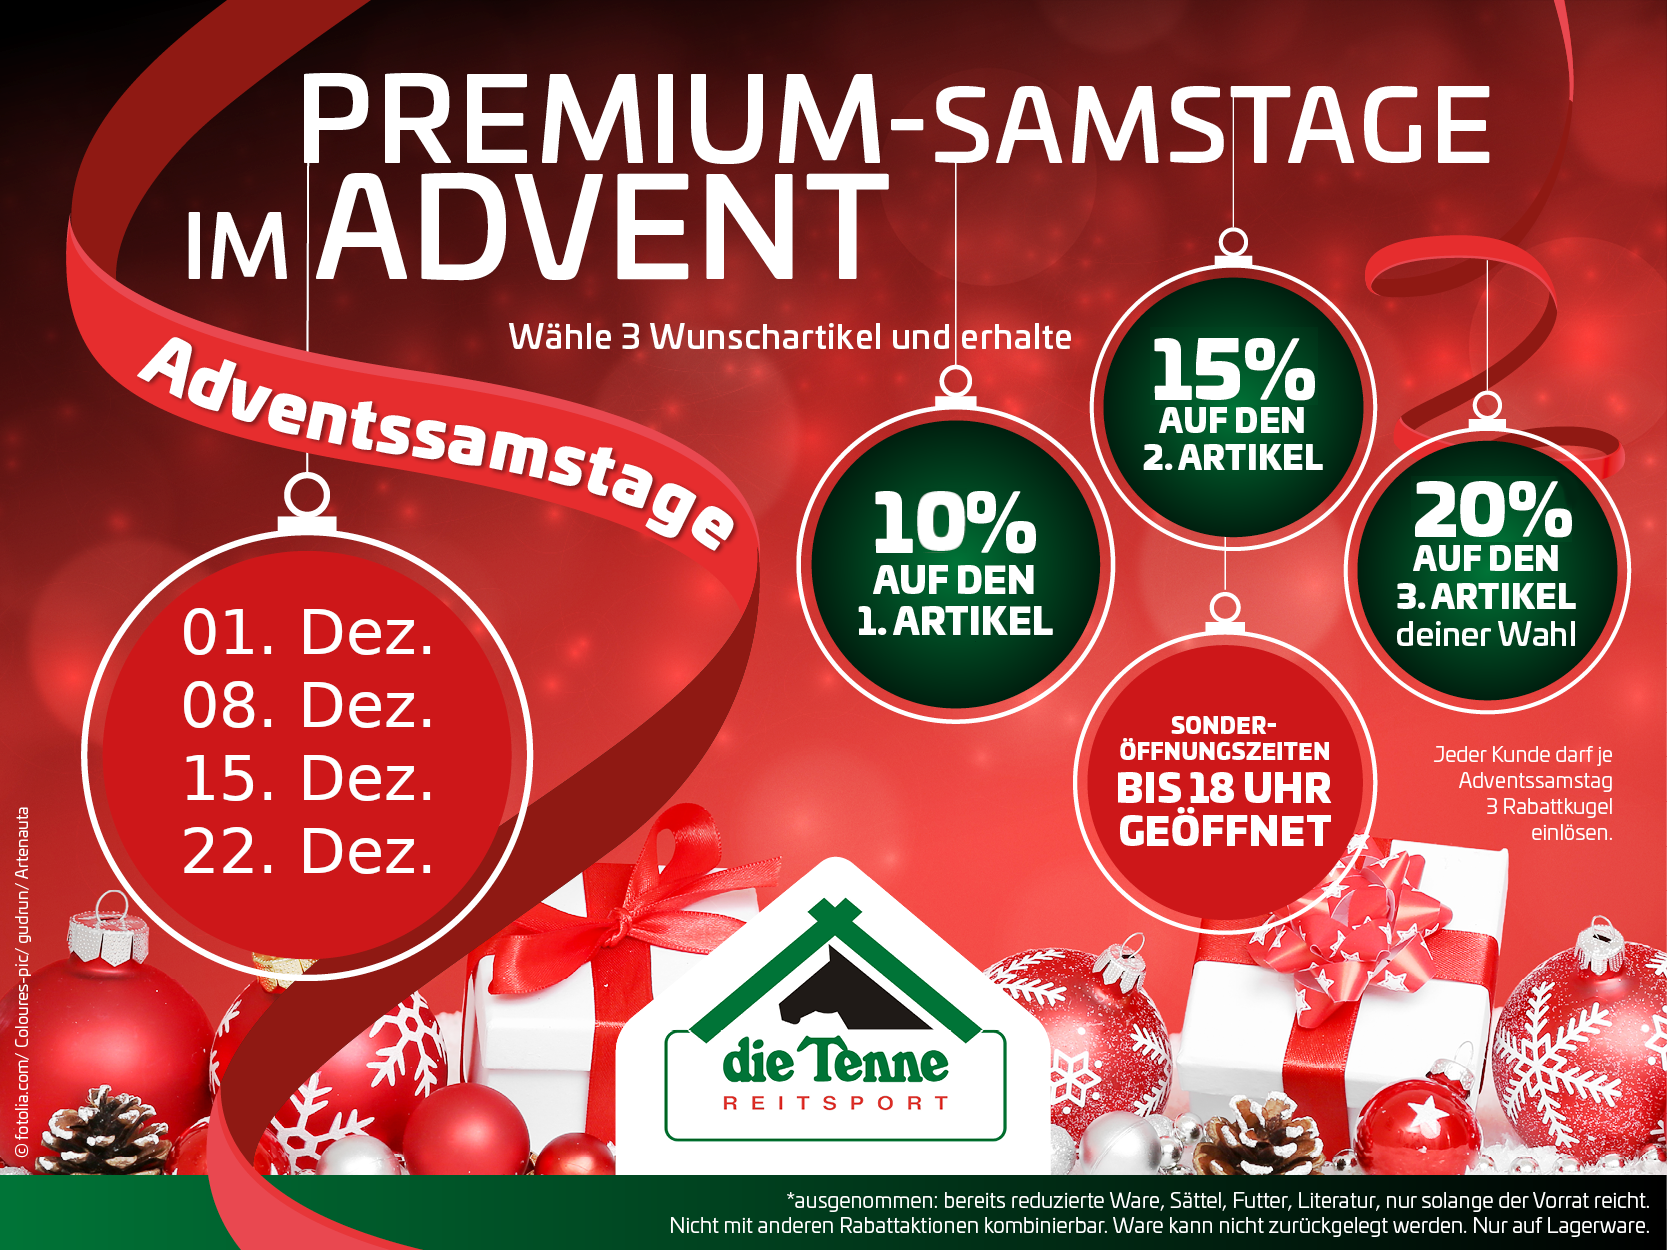 Adventssamstage 2018